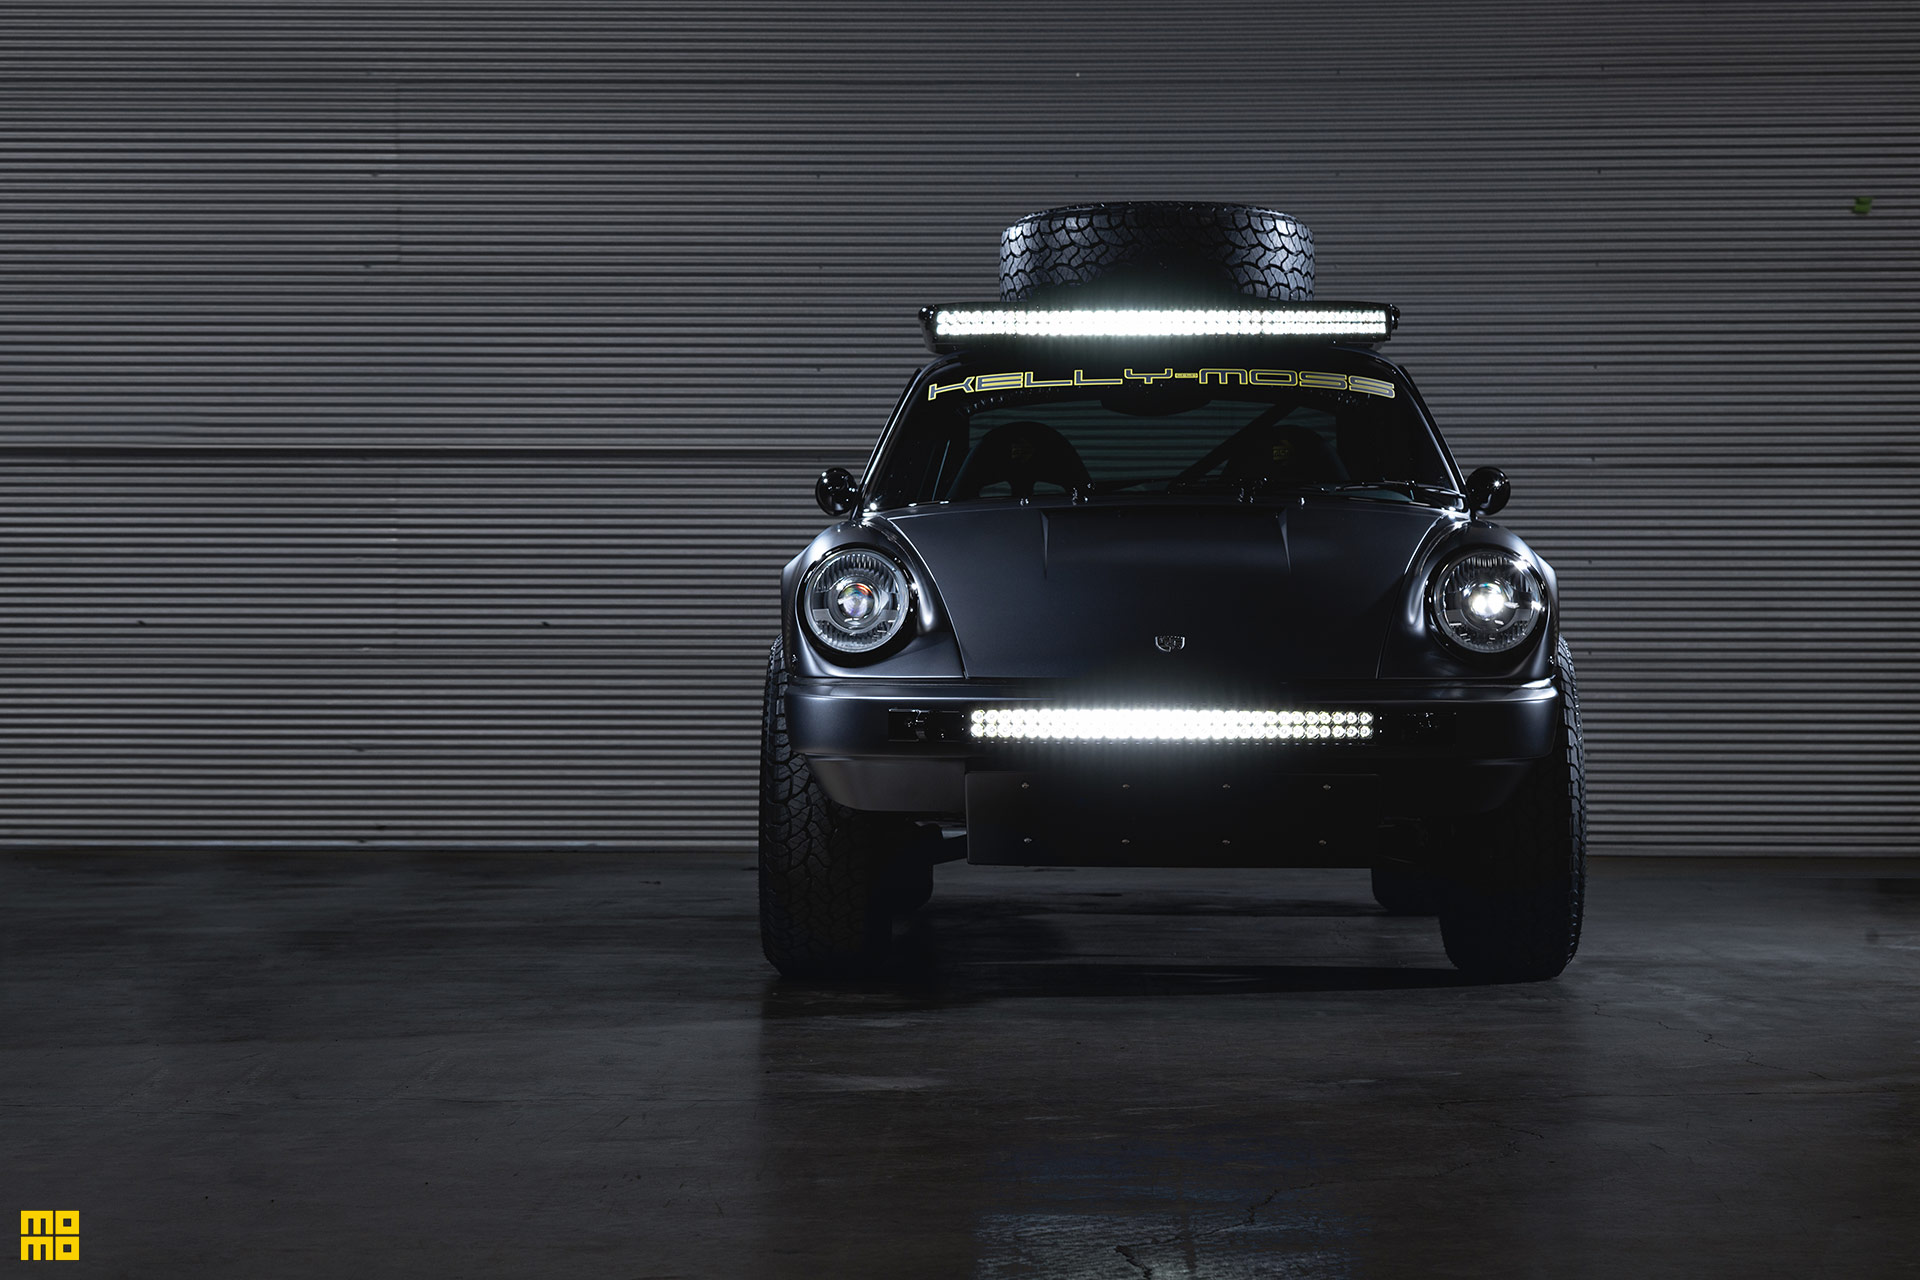 Matte Black Porsche 911 Safari - MOMO Heritage 6 Wheels in Matte Black